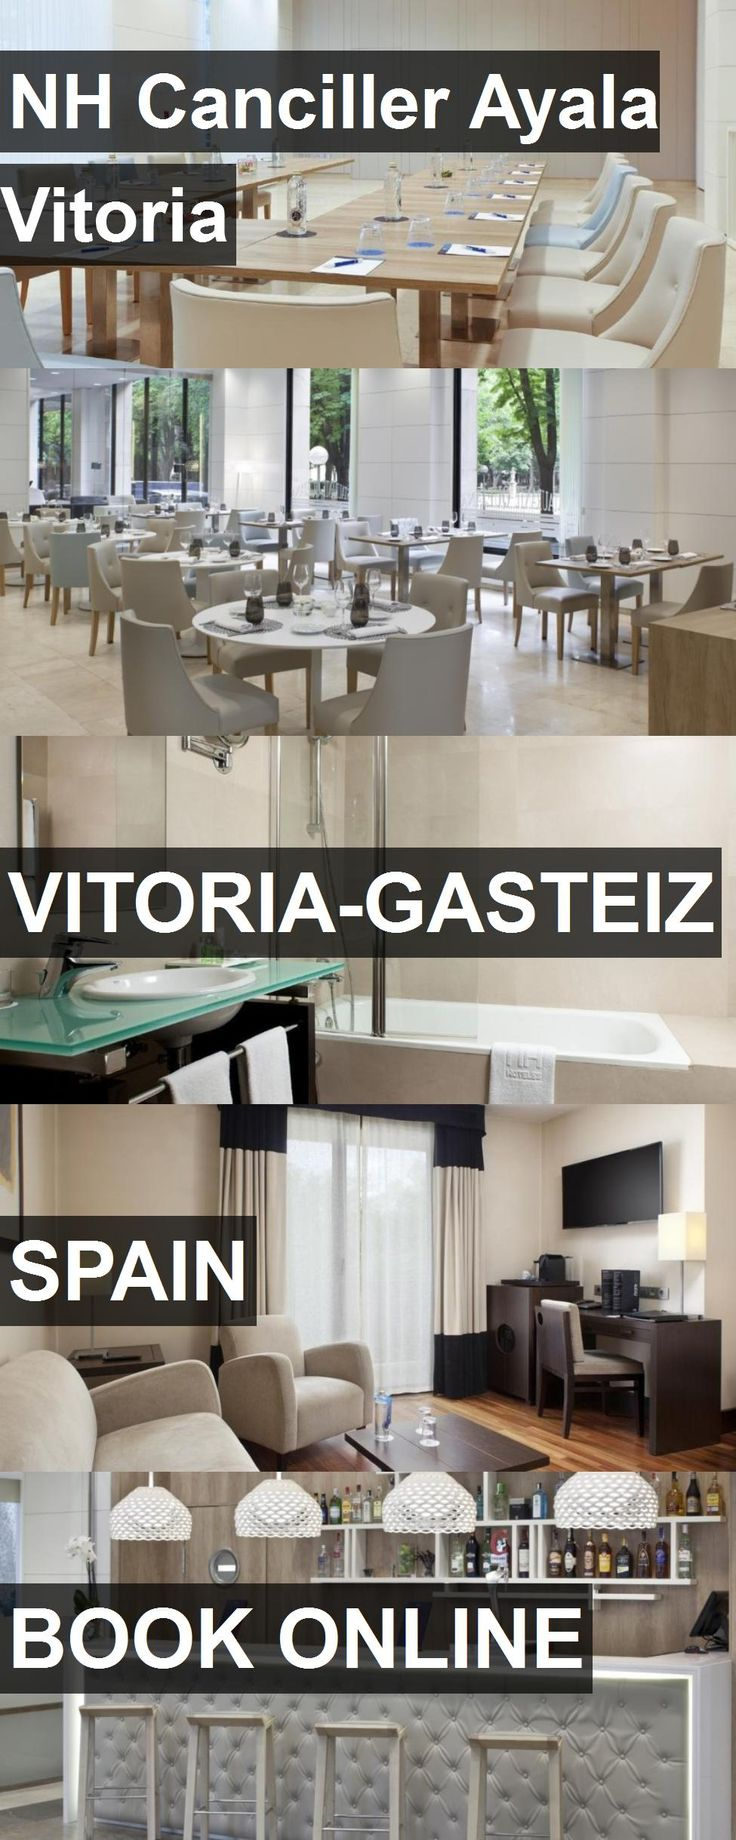 Hotel NH Canciller Ayala Vitoria in Vitoria-Gasteiz, Spain. For more information, photos, reviews and best prices please follow the link. #Spain #Vitoria-Gasteiz #NHCancillerAyalaVitoria #hotel #travel #vacation